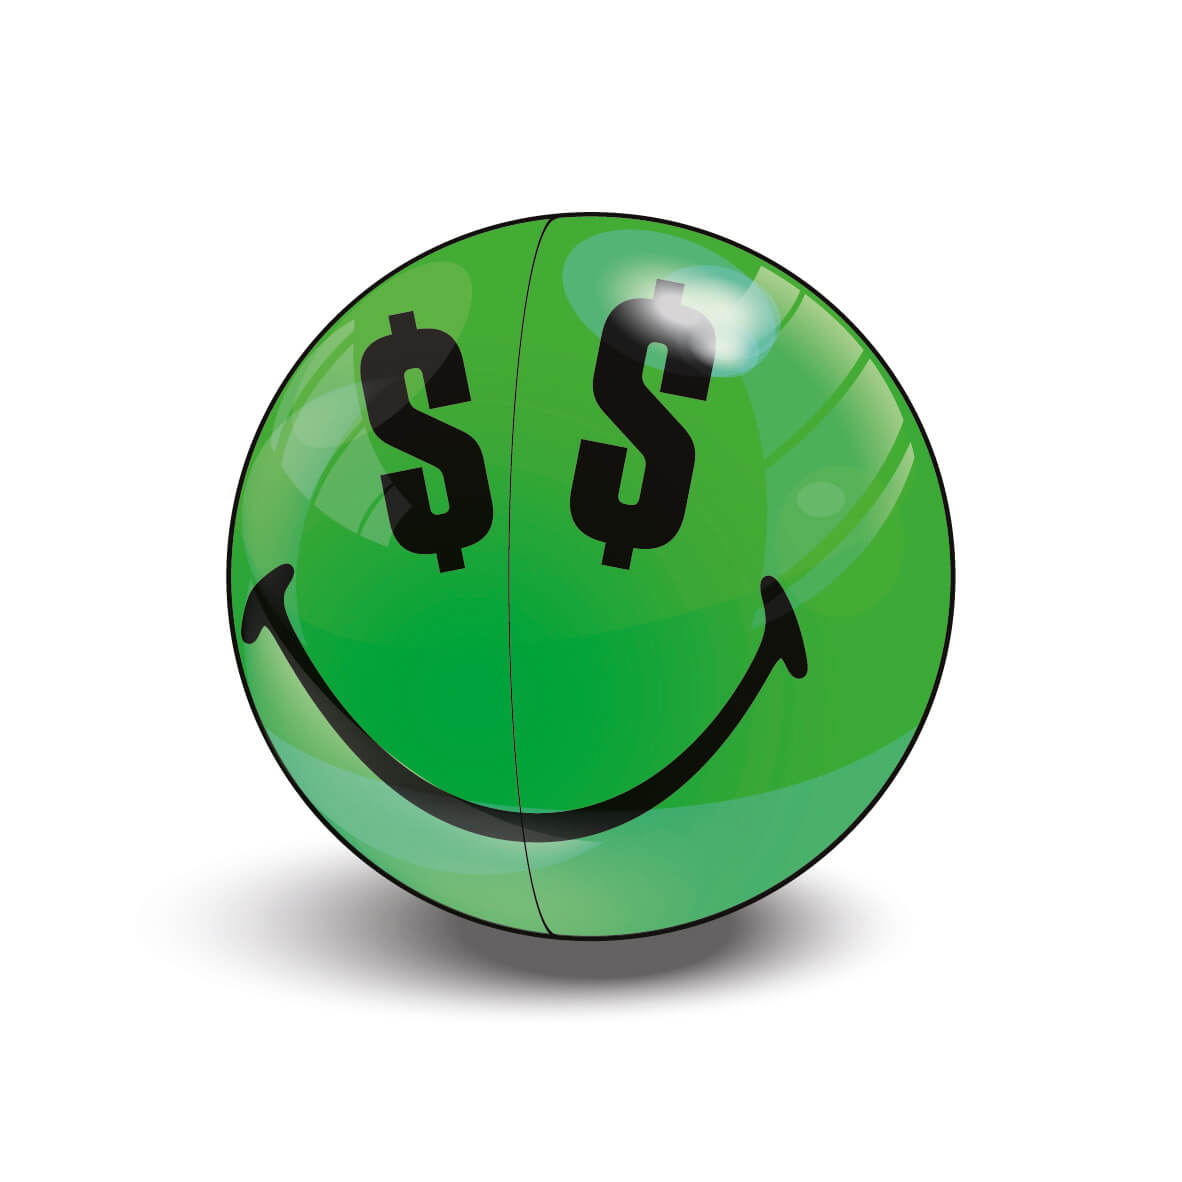 Green Ultra Rare Smiley Halves